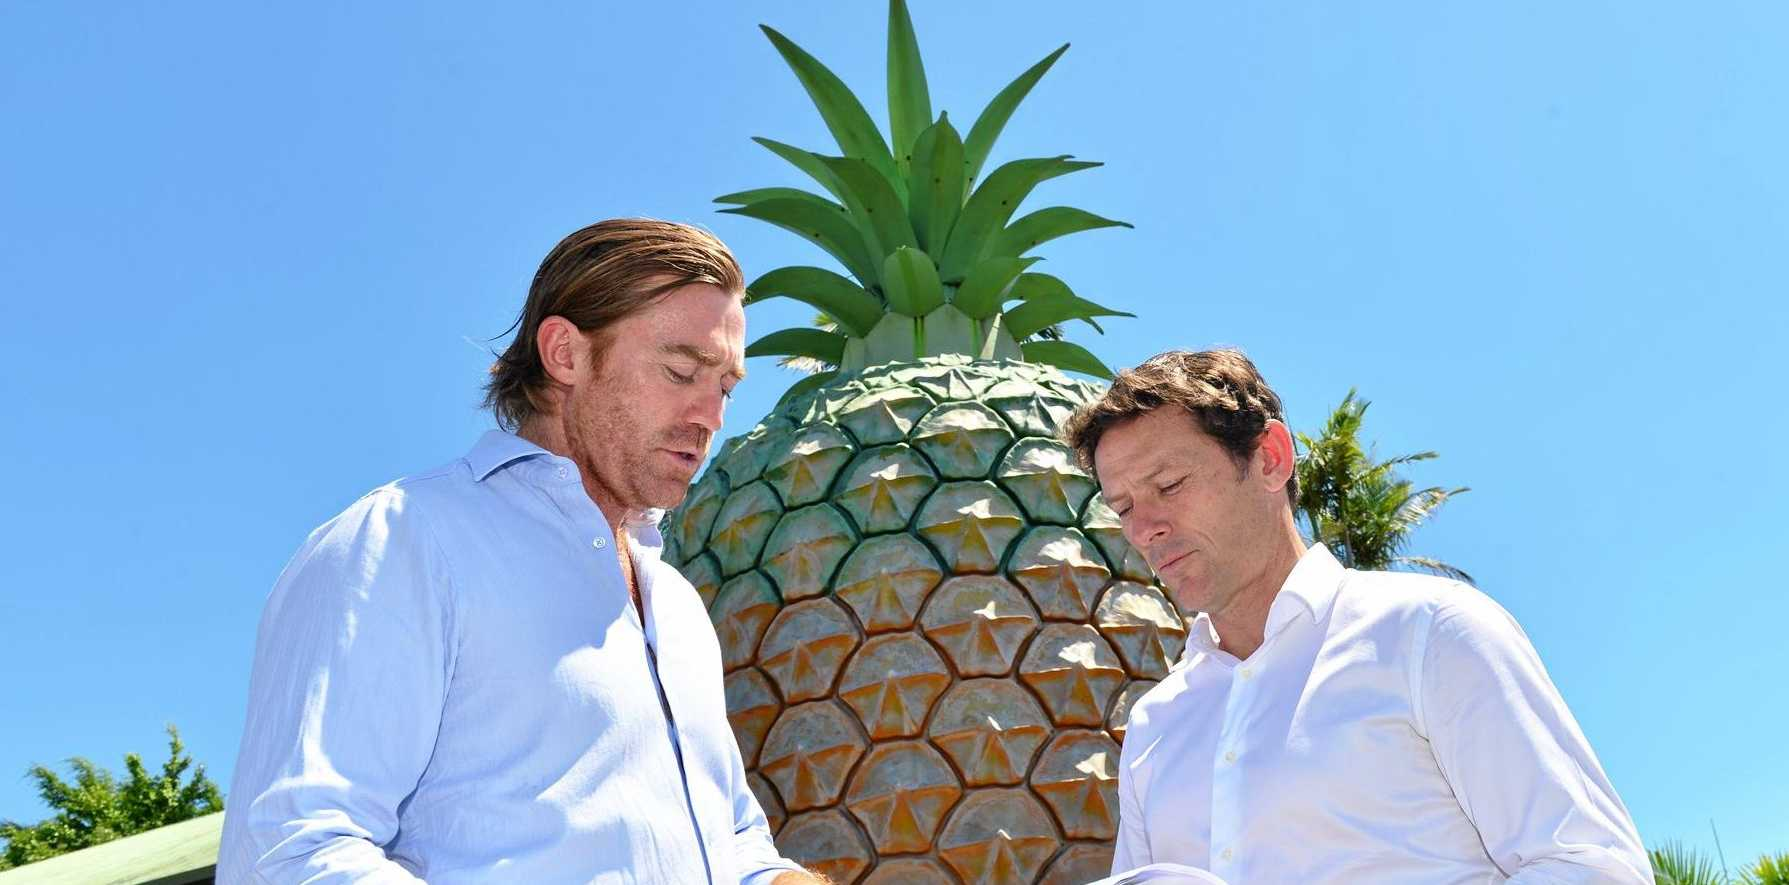 Jim Costello, Project Director and Shaun Munday, Planning Director discuss future plans for the Big Pineapple.